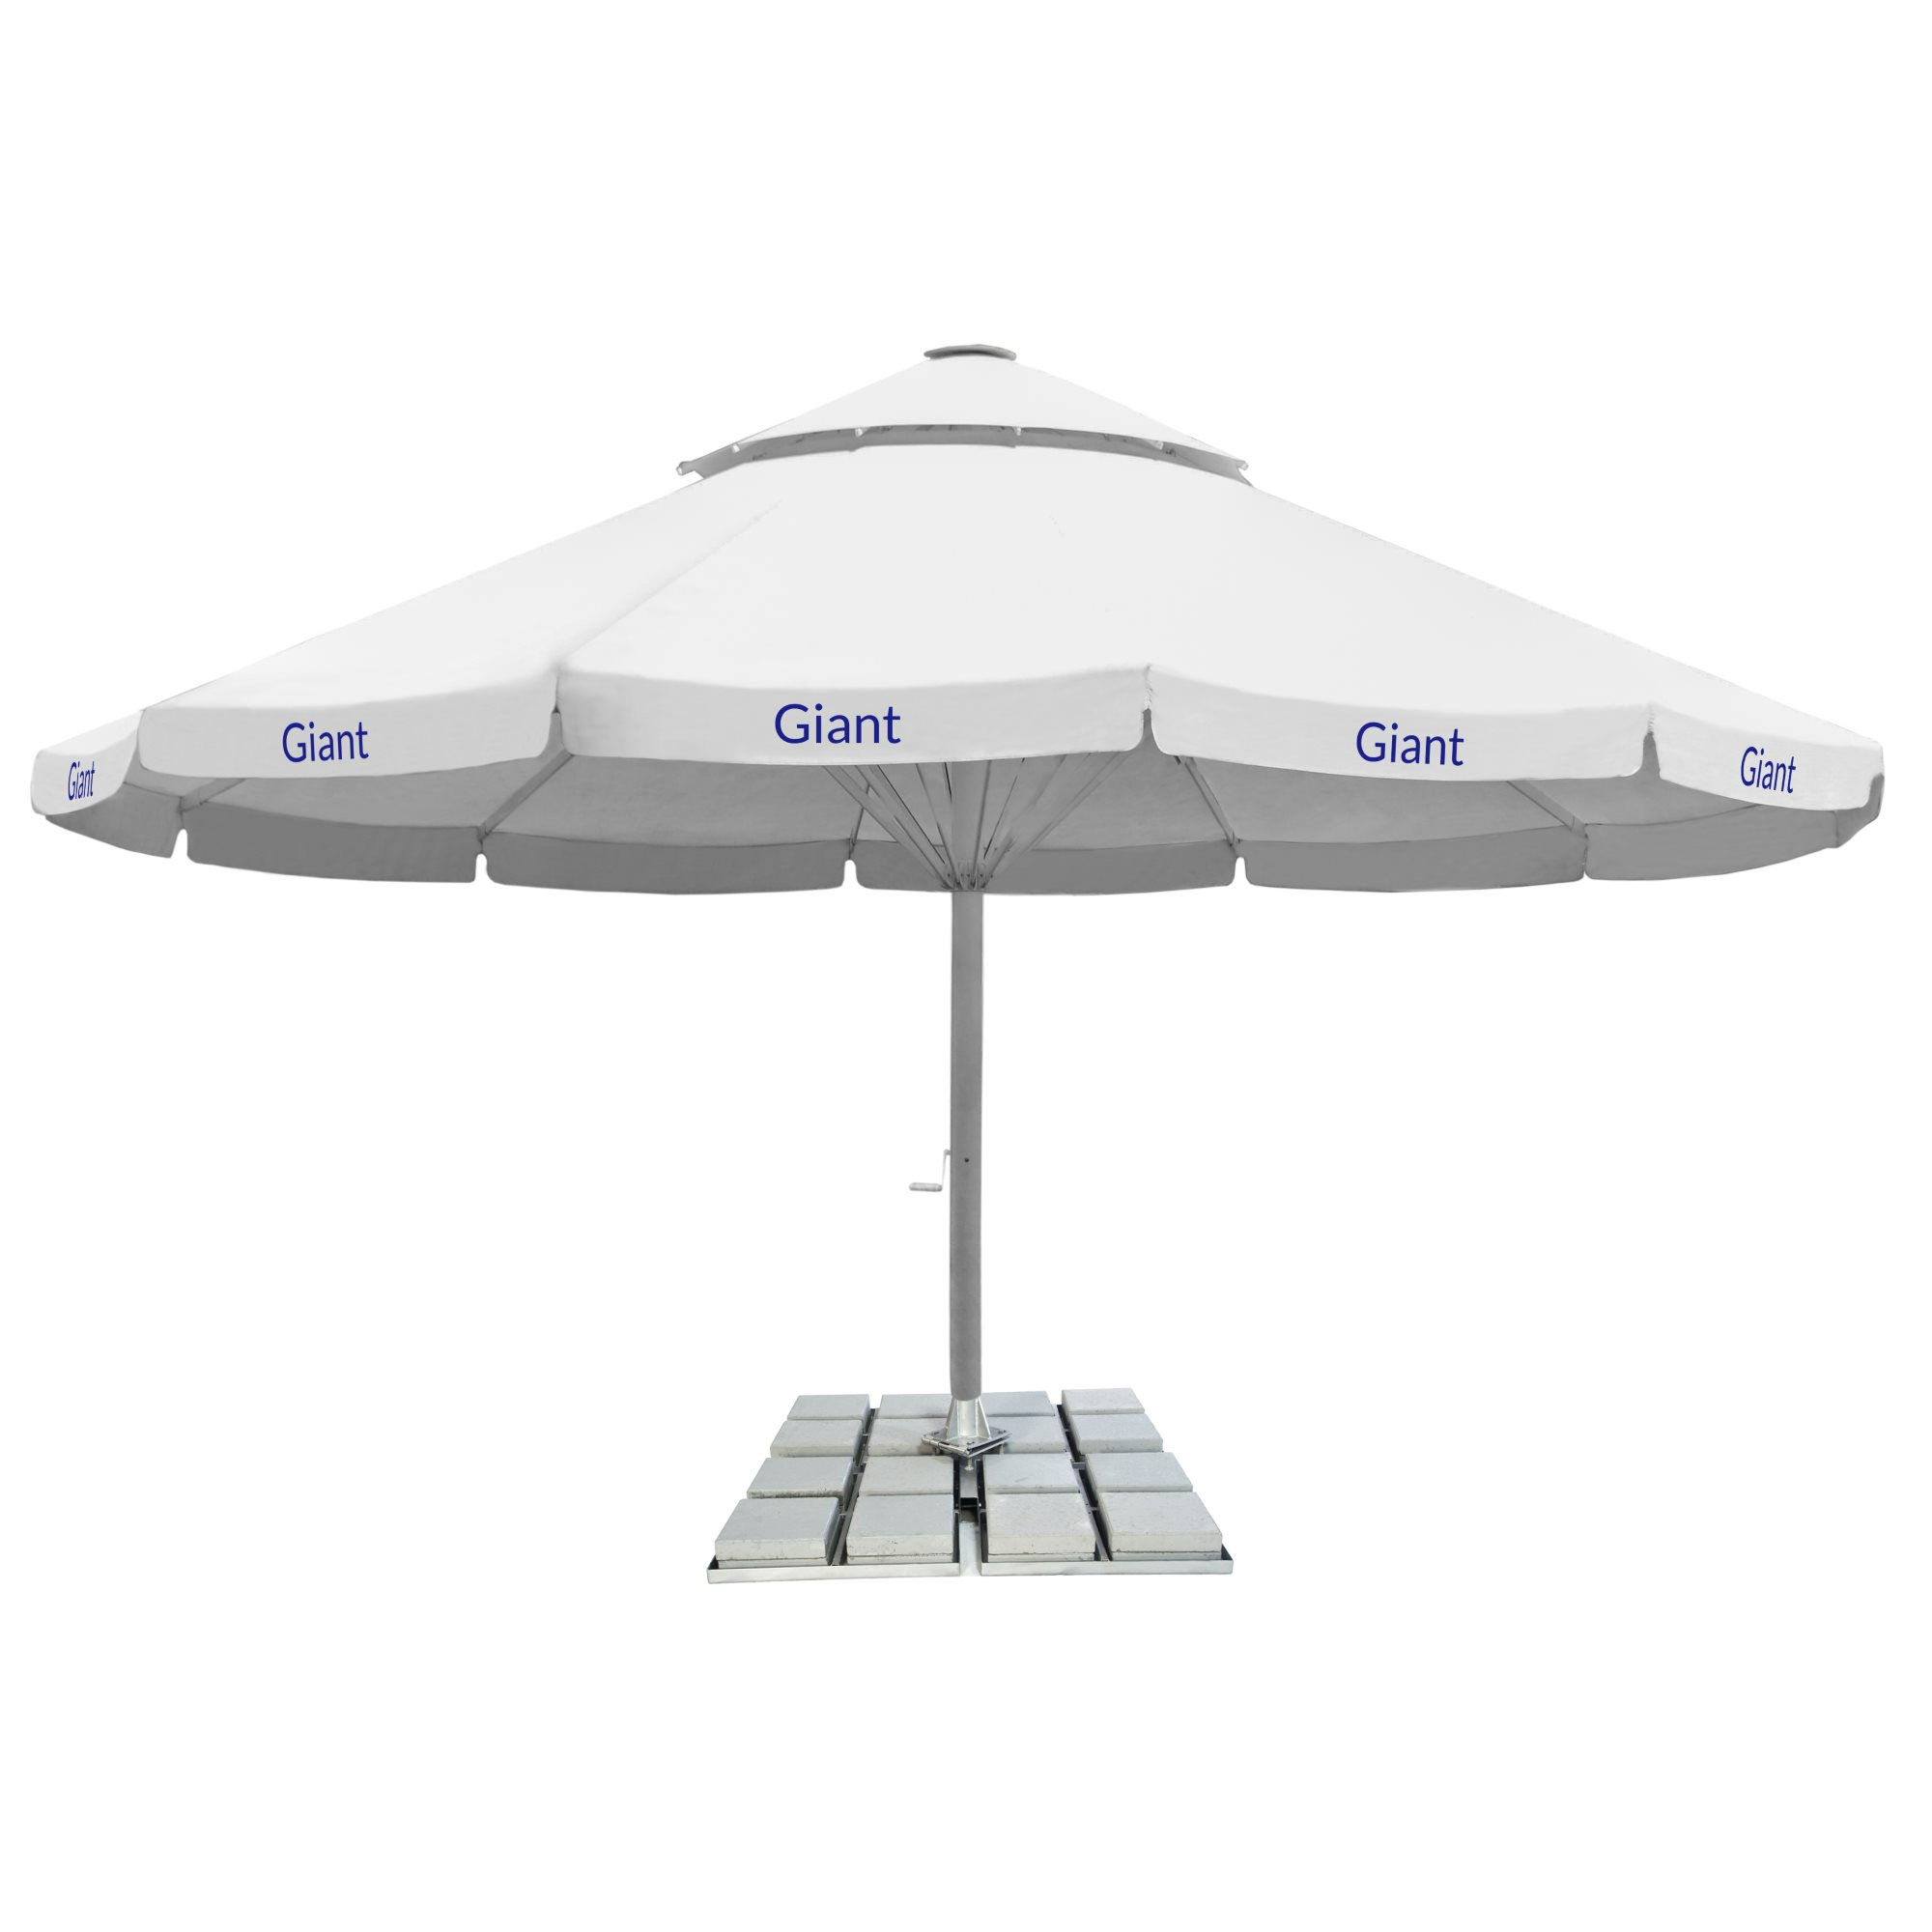 2. Giant Parasol 12-sided 8m - with fairing and 2nd roof